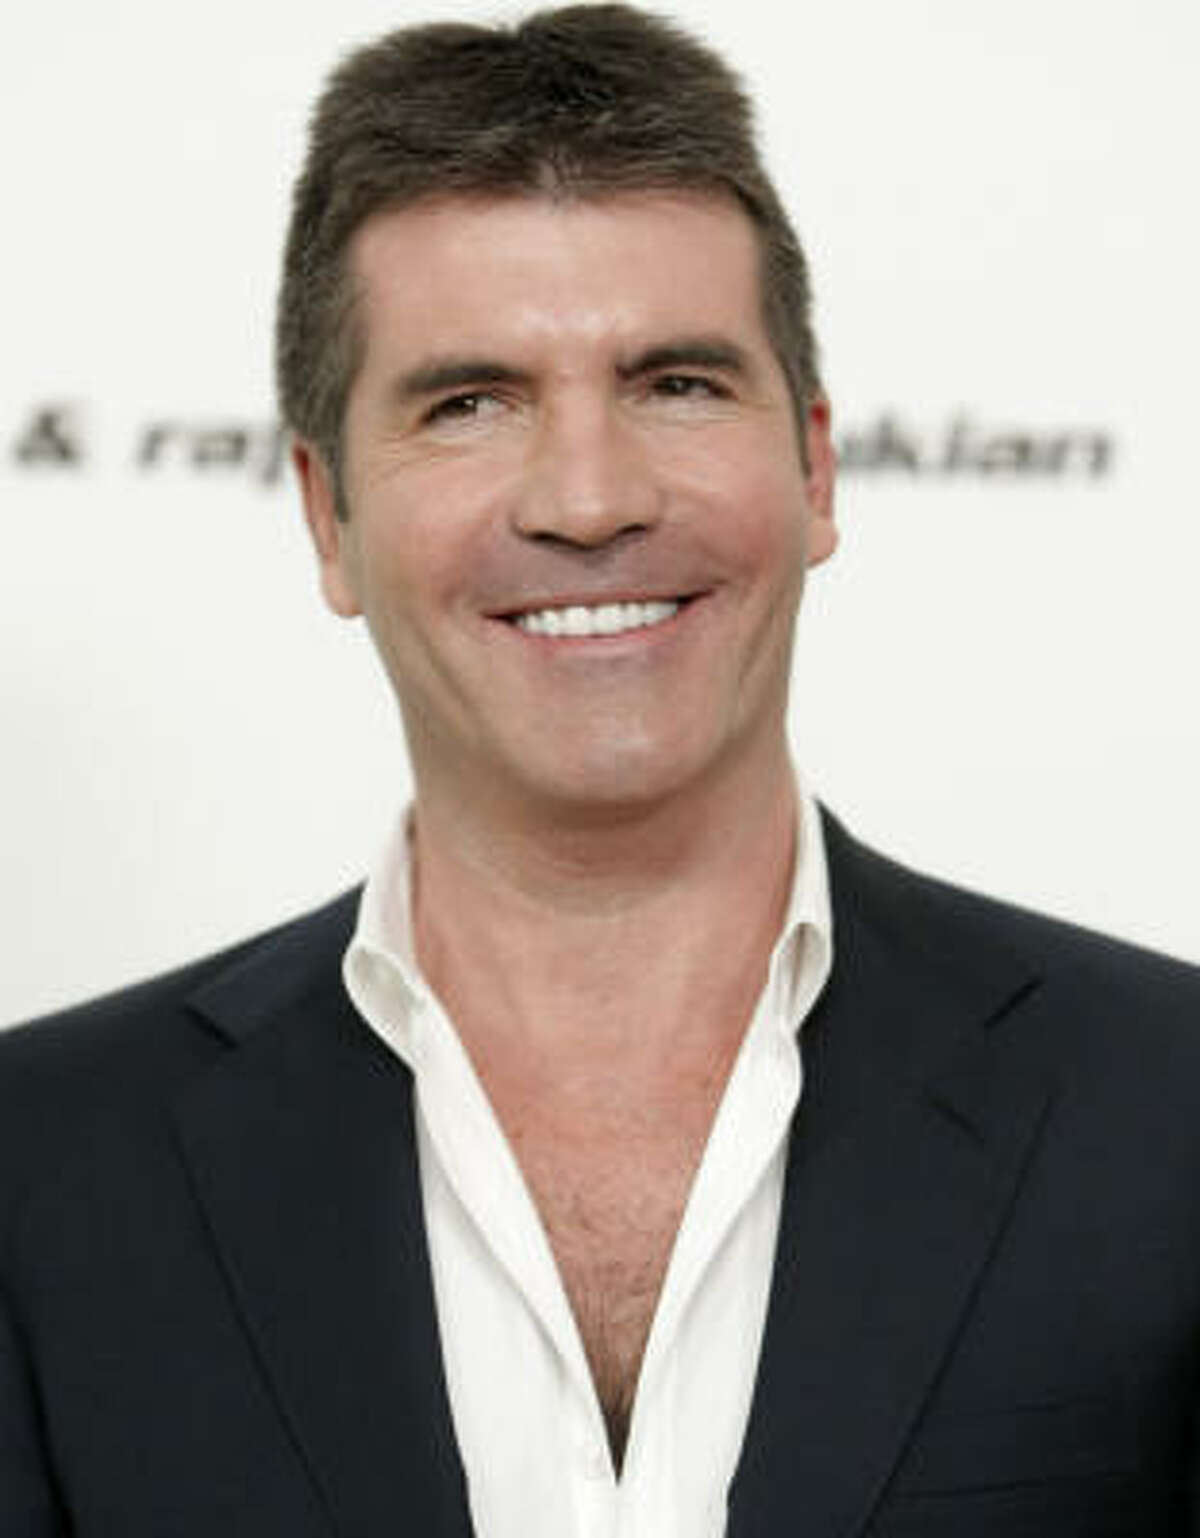 Forbes magazine named these guys the top earners iin 2009 on TV: 1. Simon Cowell (75 million dollars). Read more about how they made their money here.